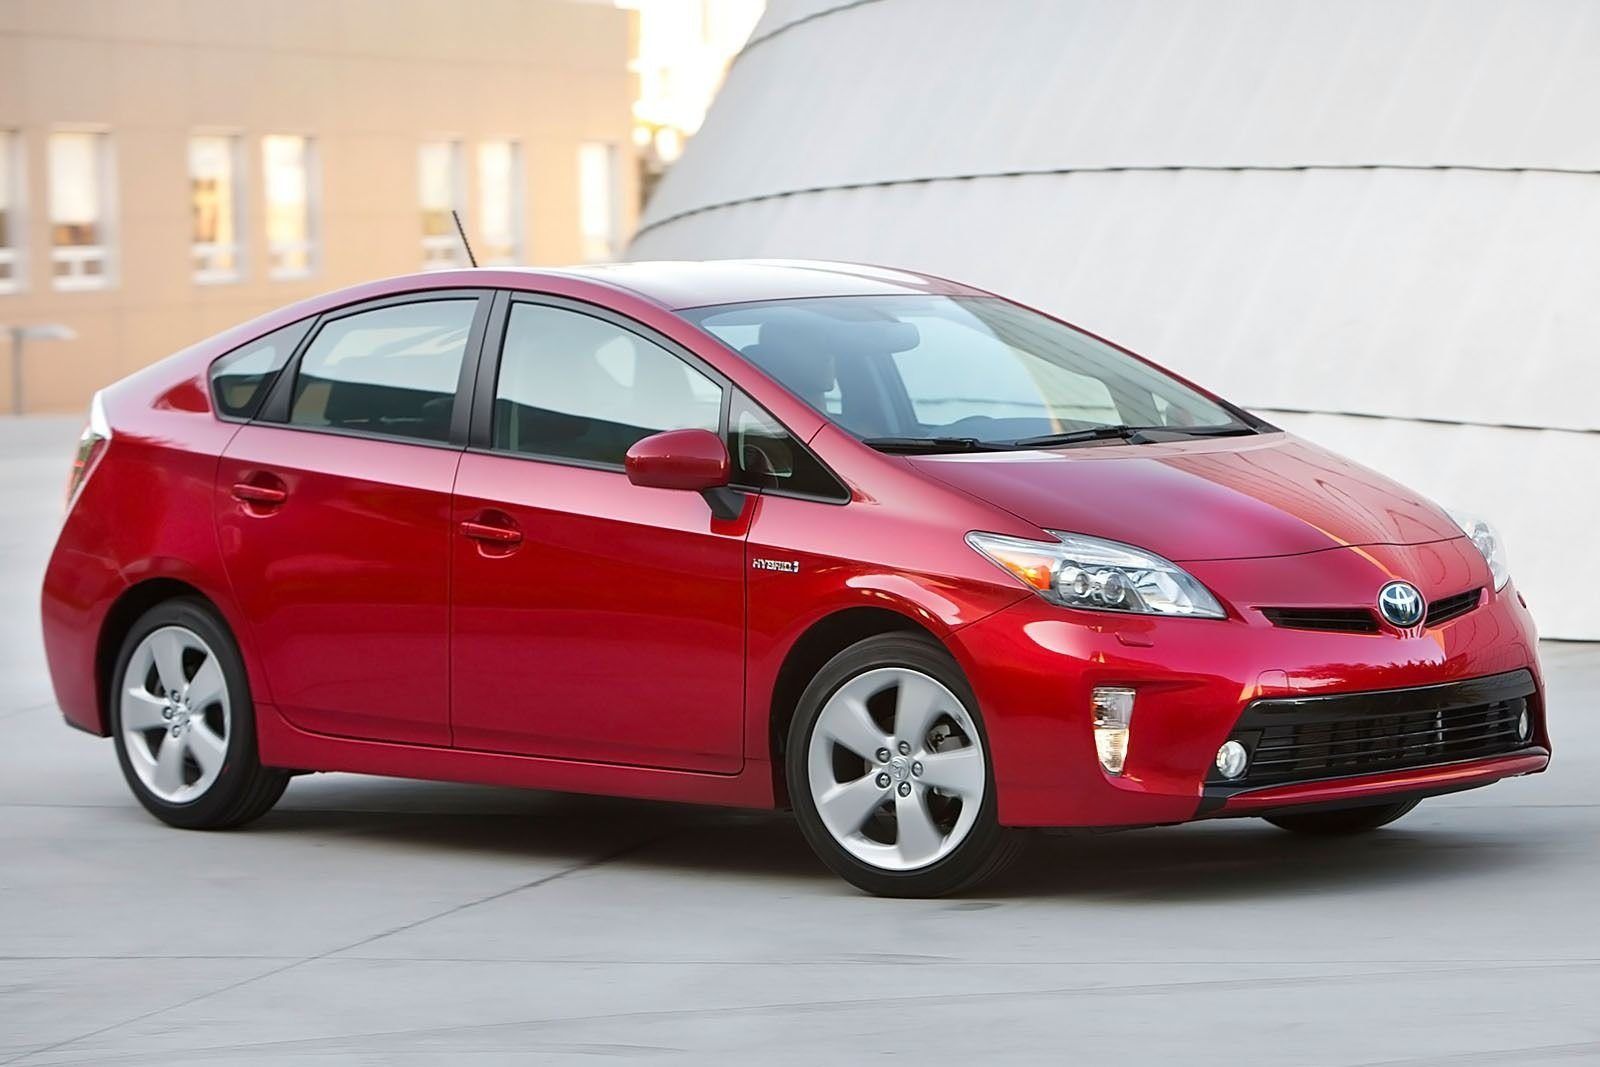 Potentially Deadly Brake Defect Triggers Toyota Prius